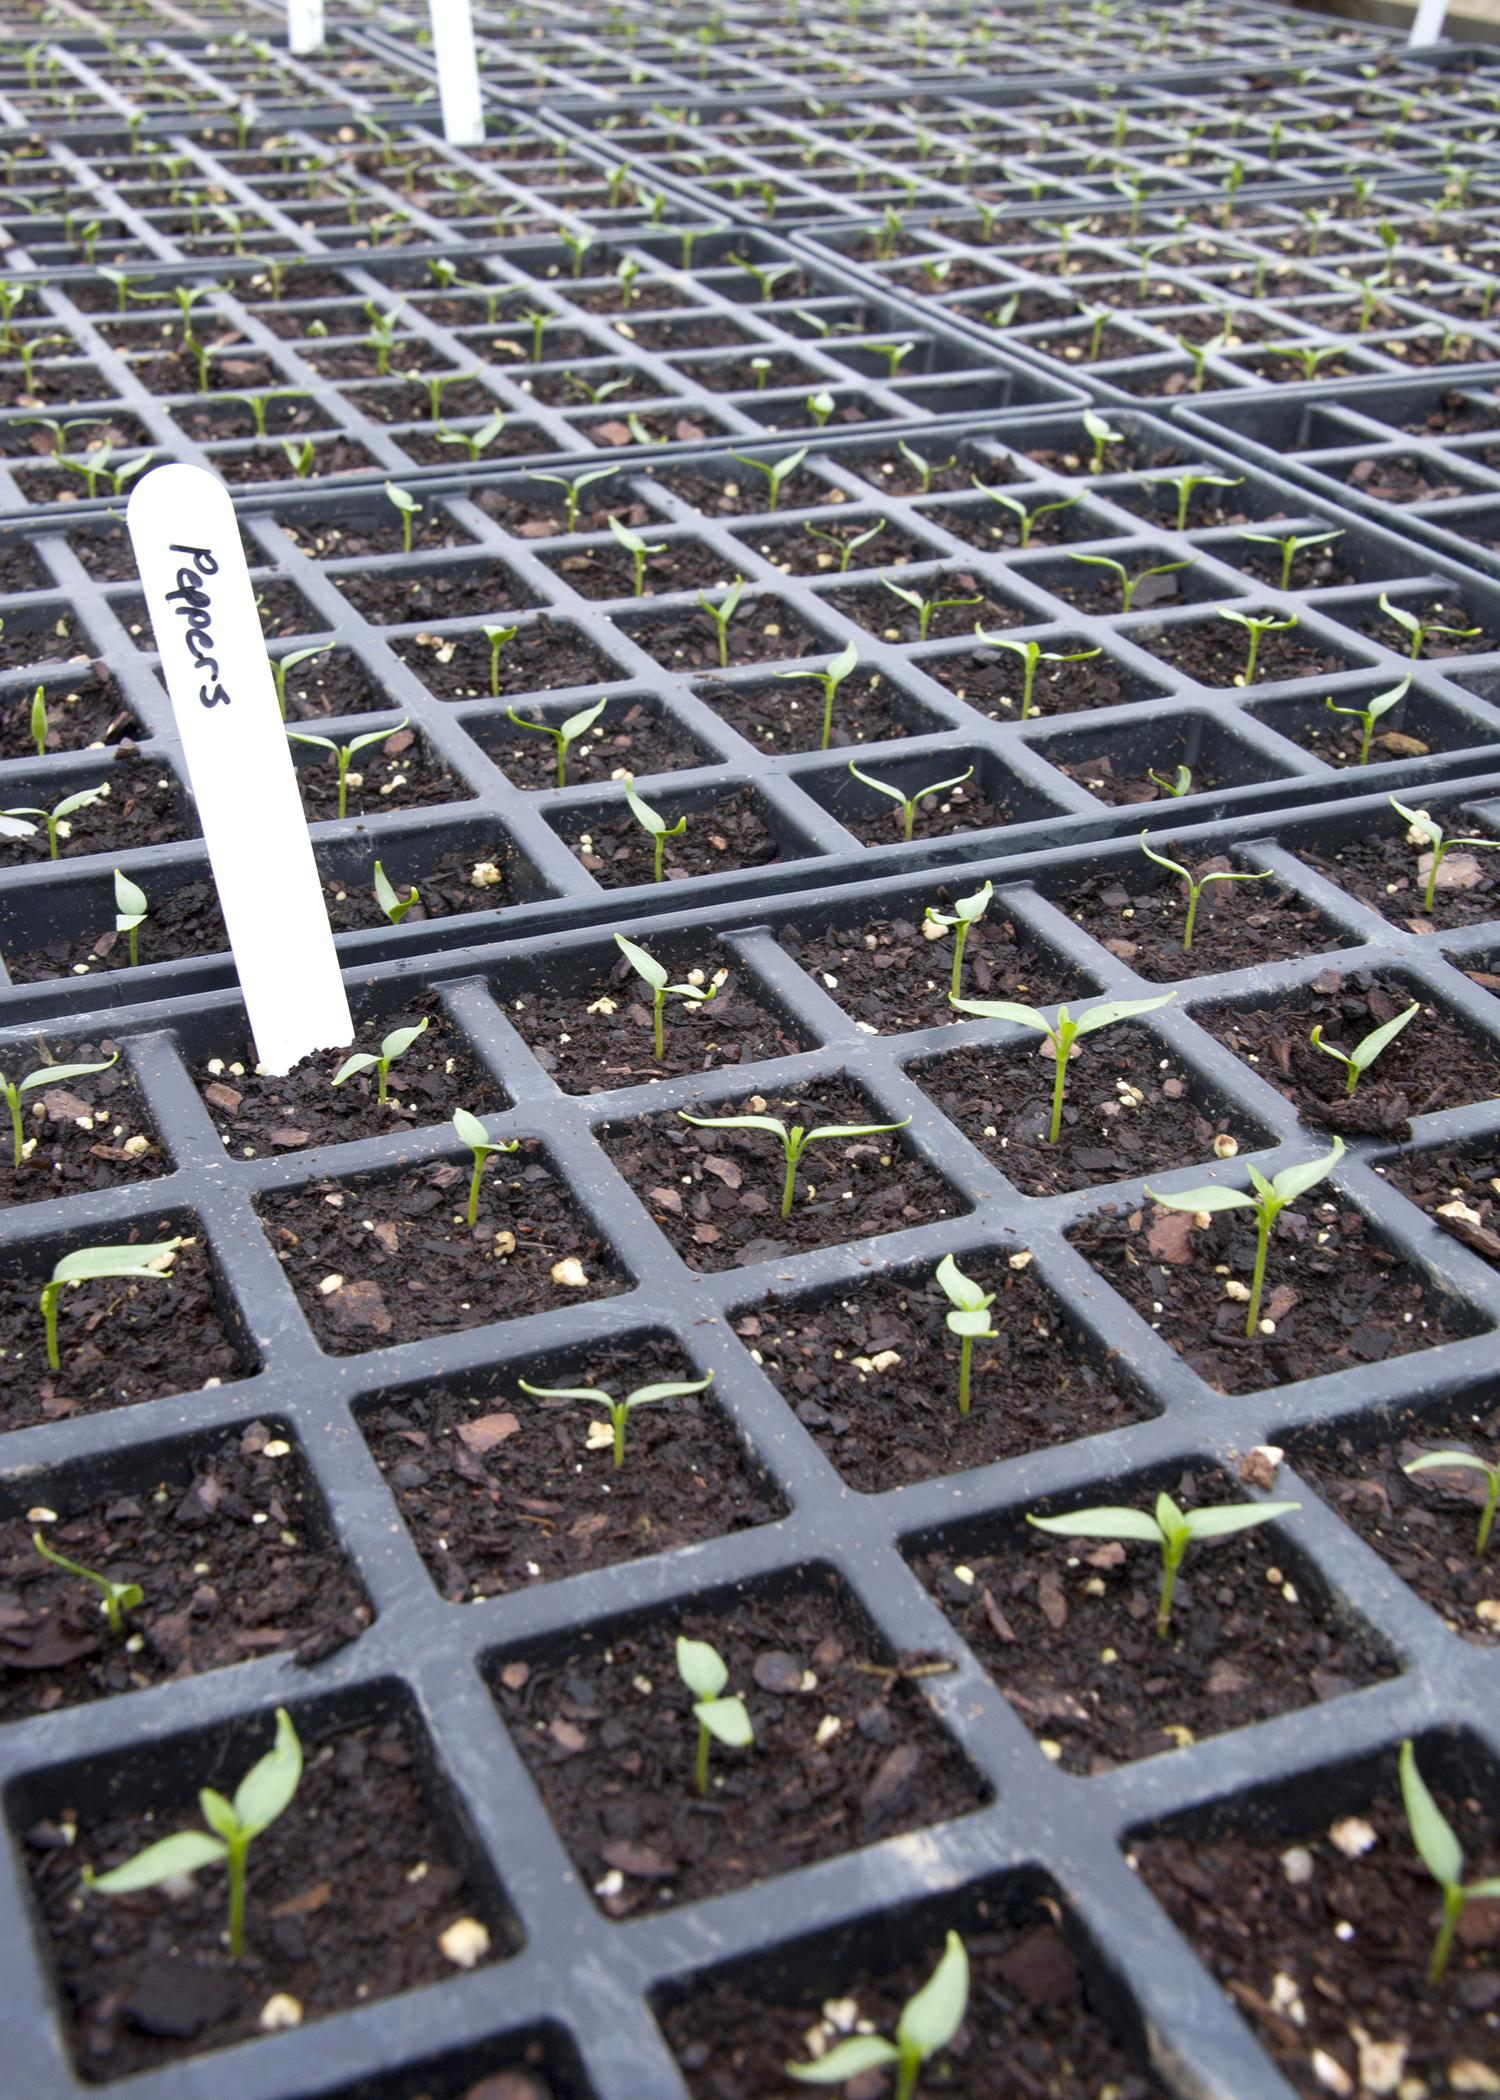 Start seedlings by late February to have transplants ready for planting in the ground on Good Friday. (Photo by MSU Ag Communications/Kat Lawrence)